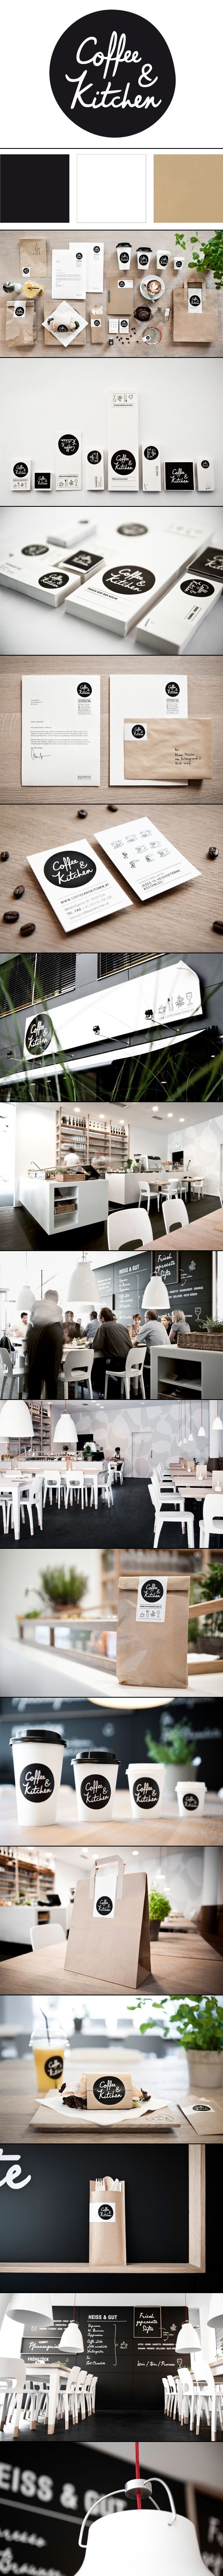 identity / Coffee & Kitchen | Moodley Brand Identity |  < repinned by www.BlickeDeeler.de | Take a look at www.LogoGestaltung-Hamburg.de